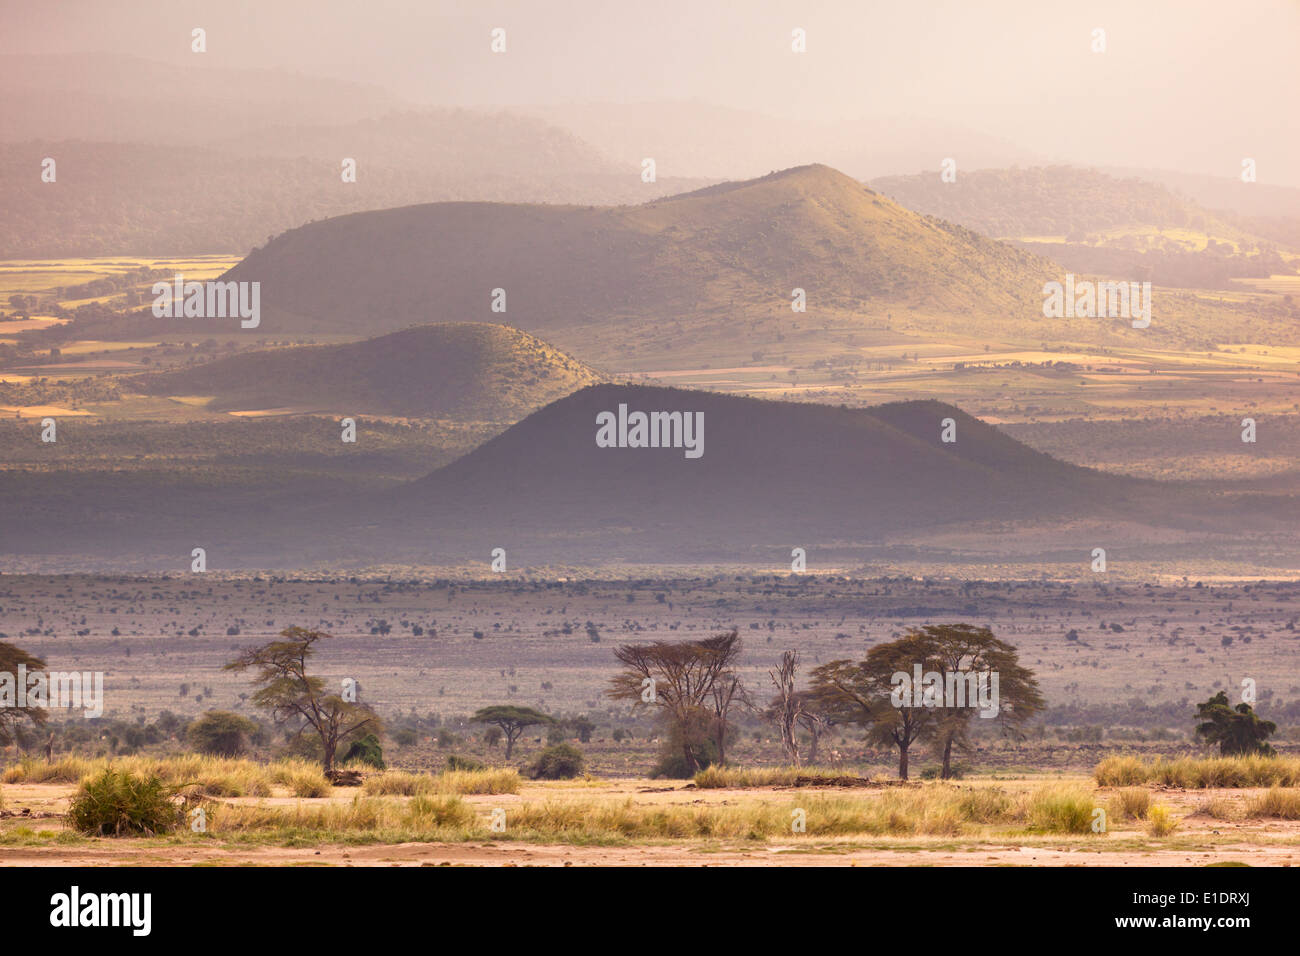 Volcanic craters on the flank of Mount Kilimanjaro seen from Amboseli National Park in Kenya with beautiful evening light. - Stock Image